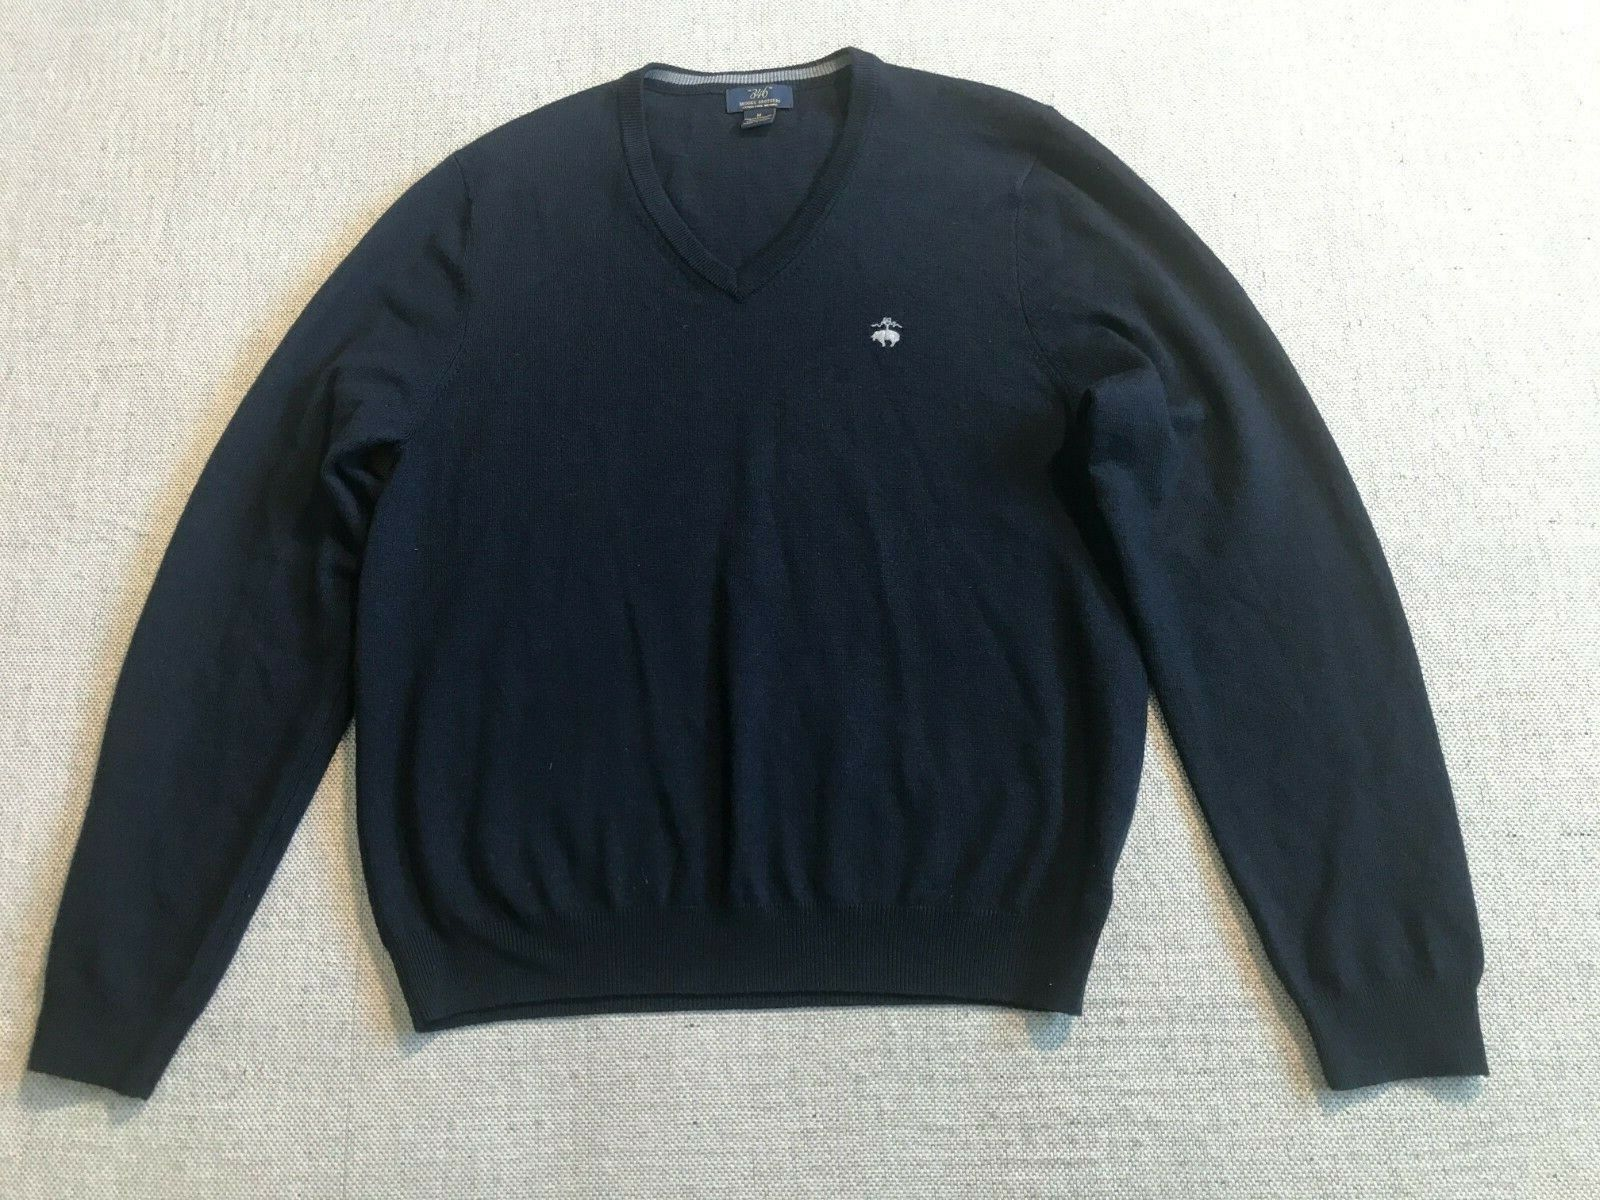 Brooks Bredhers 346 Women's Pull Over Sweater Top Merion Wool Blend Sz M  B2